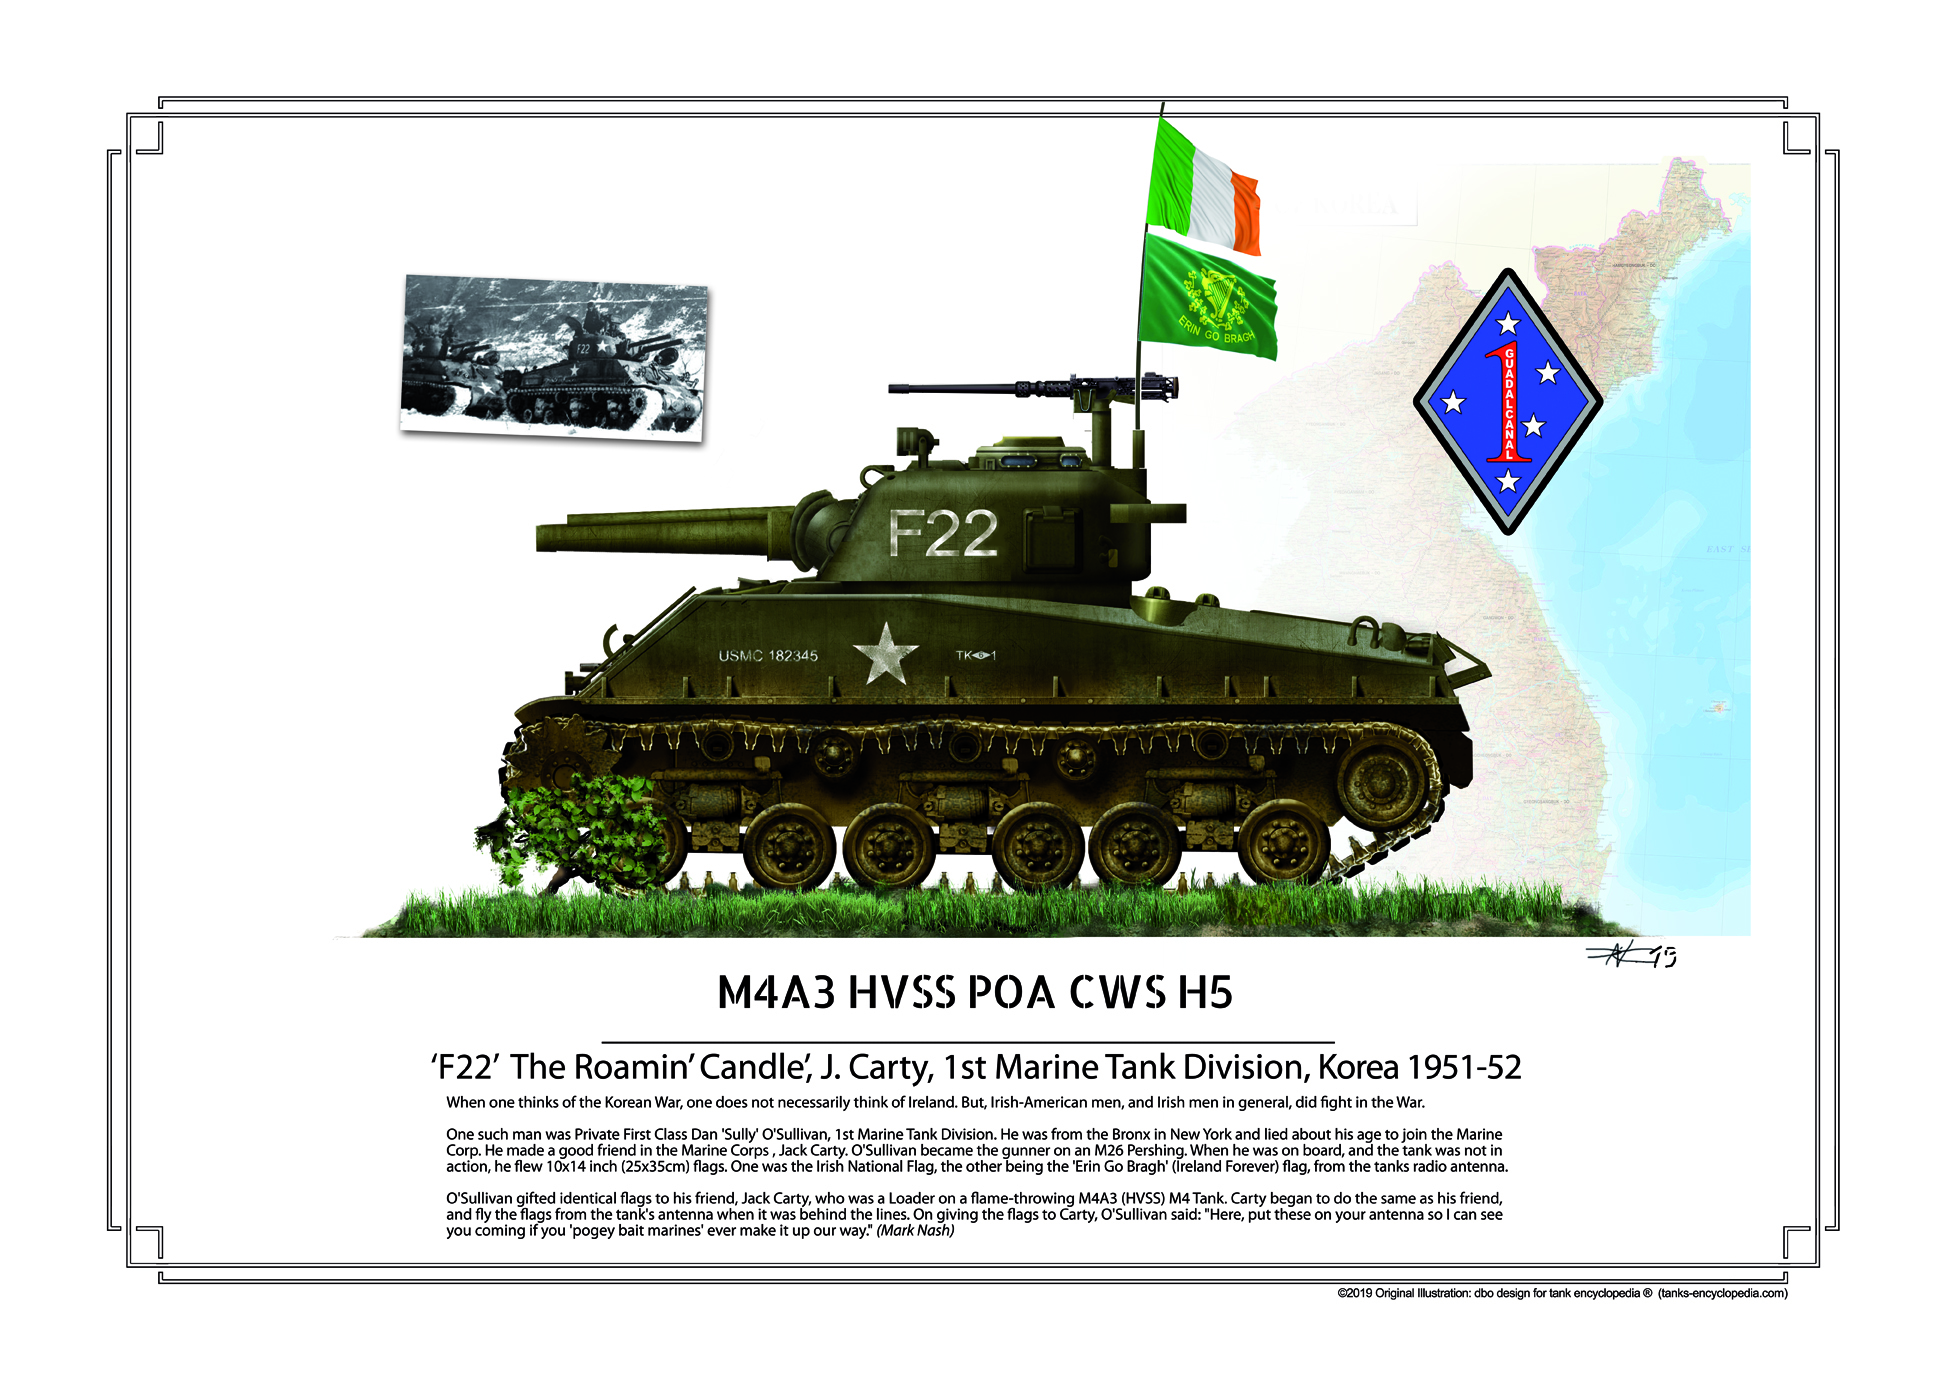 Korean War M4A3 HVSS POA CWS